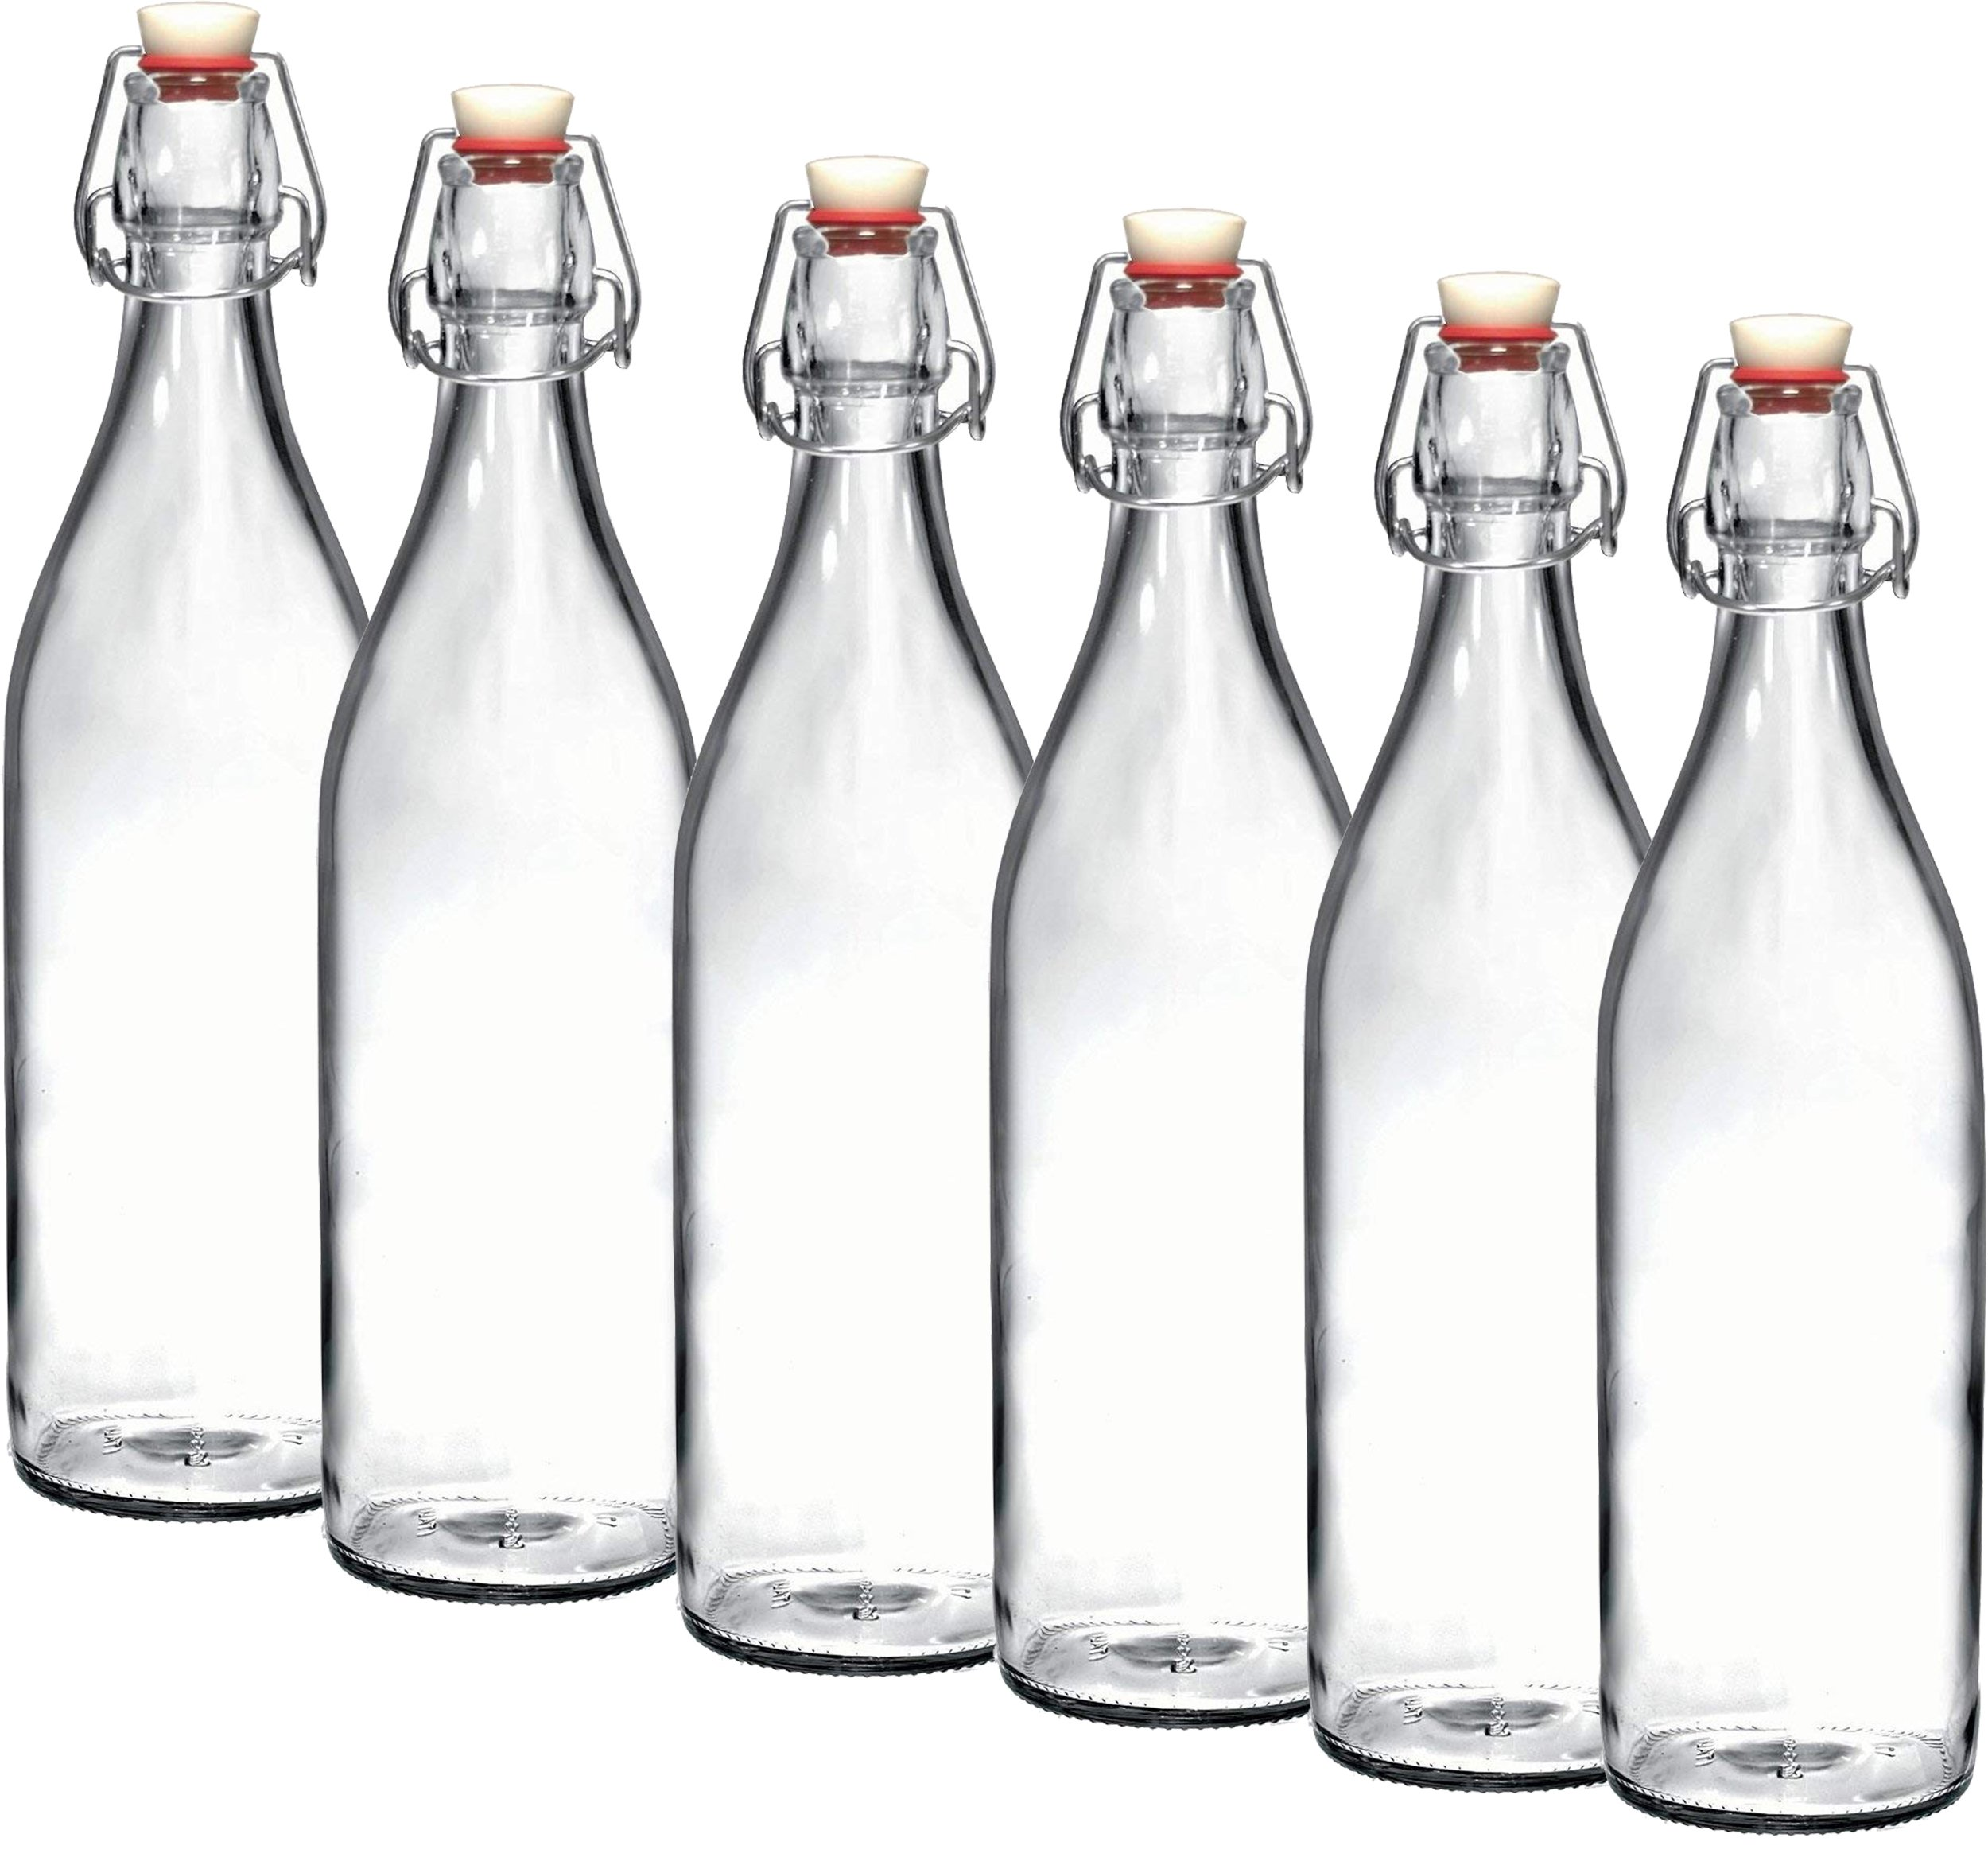 Bormioli Rocco Giara Clear Glass Bottle With Stopper Swing Top Bottles Great for Beverages, Oil, Vinegar | 33 3/4 oz (Set of 6)